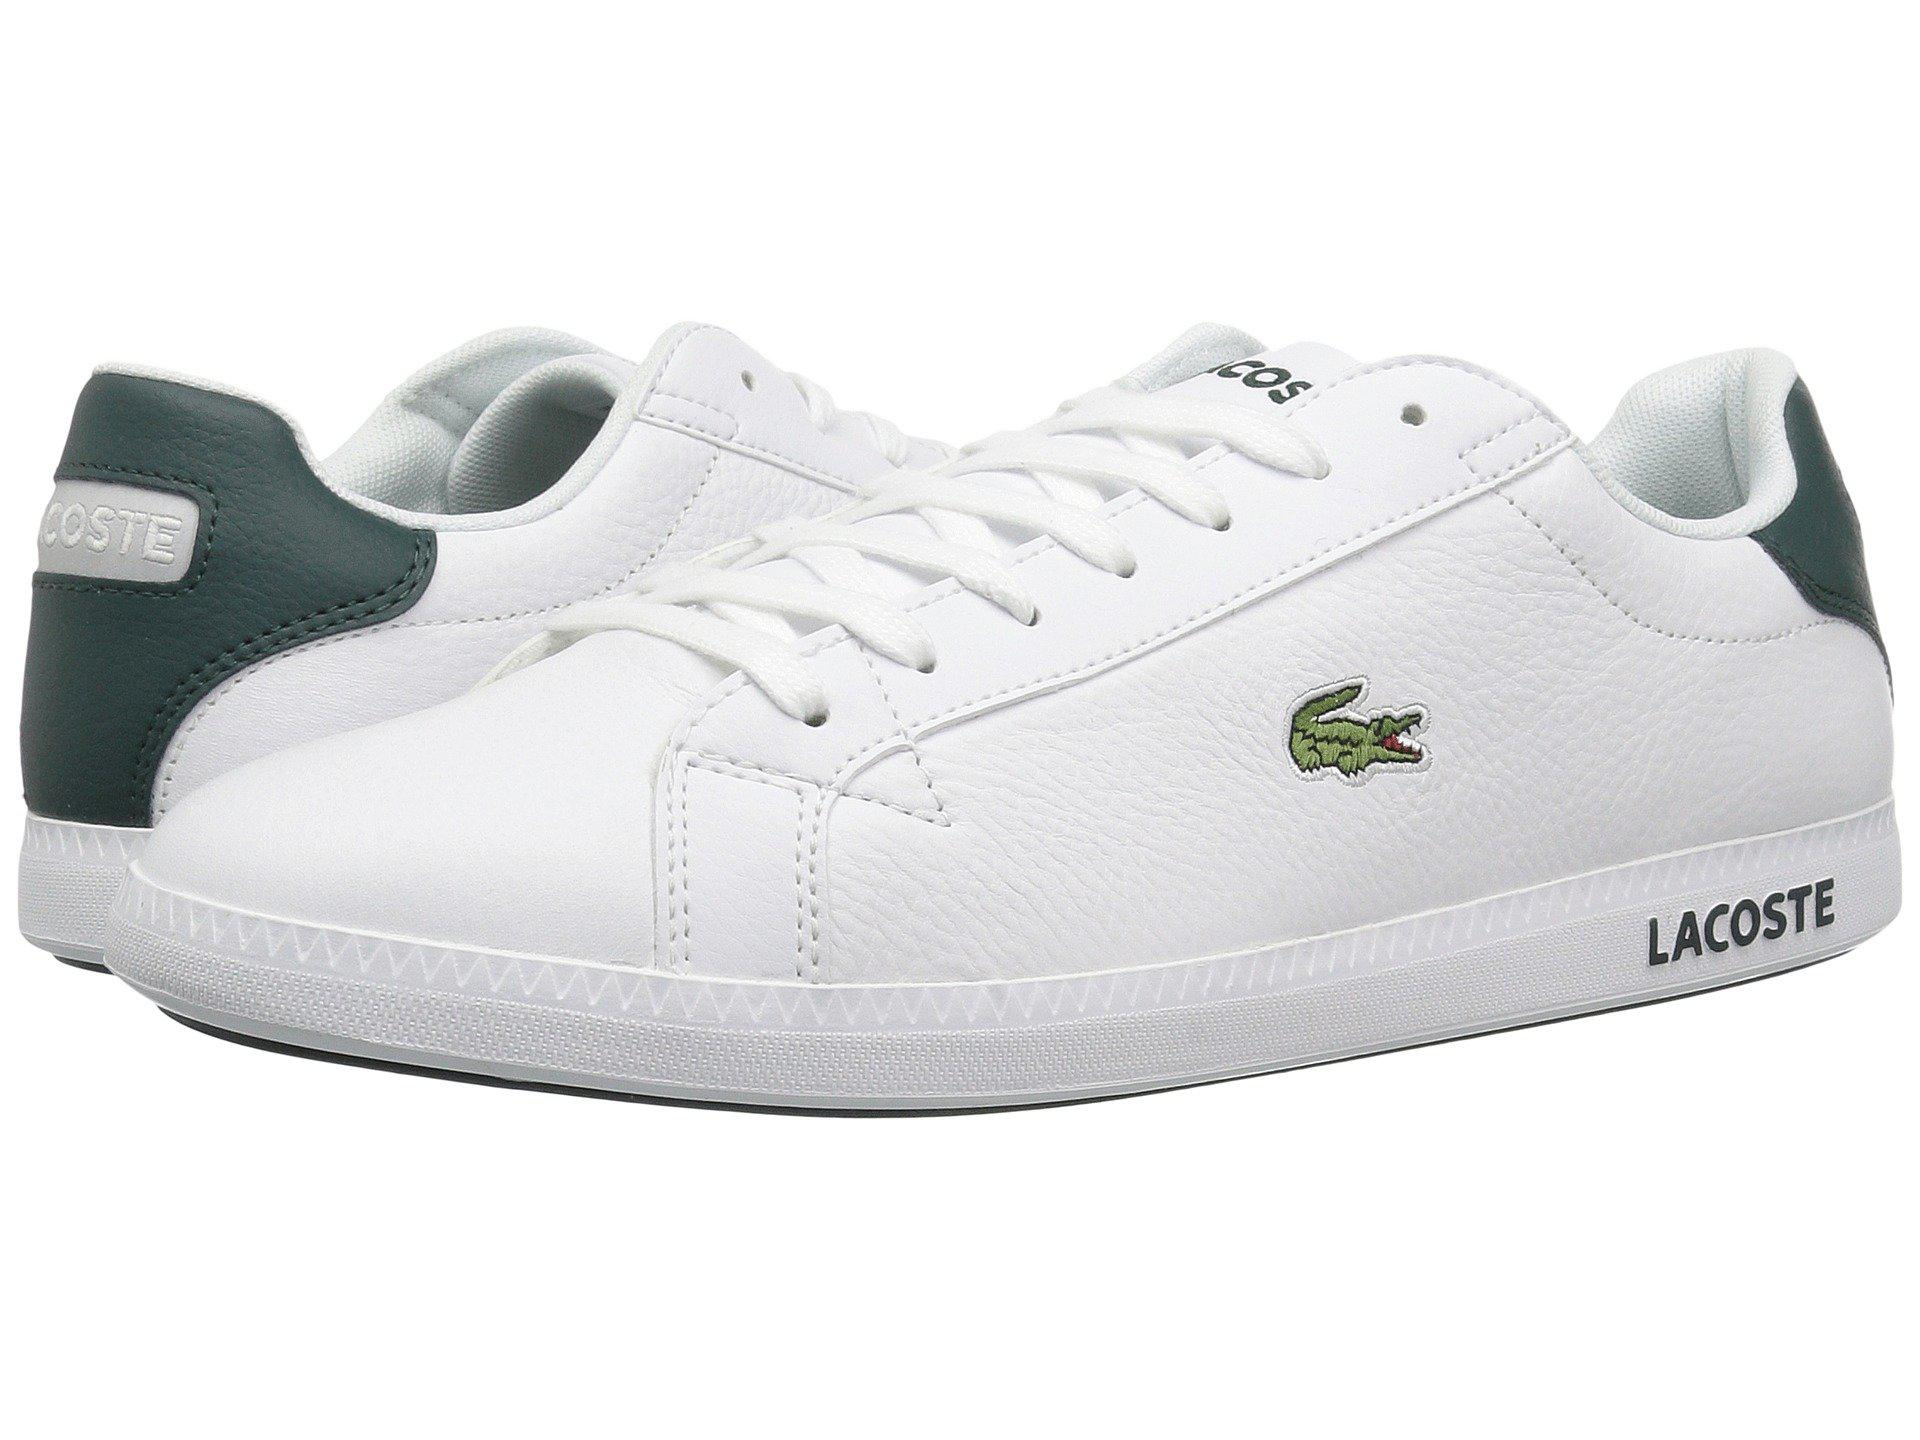 14ea5b6ca82 Lacoste - Graduate Lcr3 118 1 (white dark Green) Men s Shoes for Men. View  fullscreen